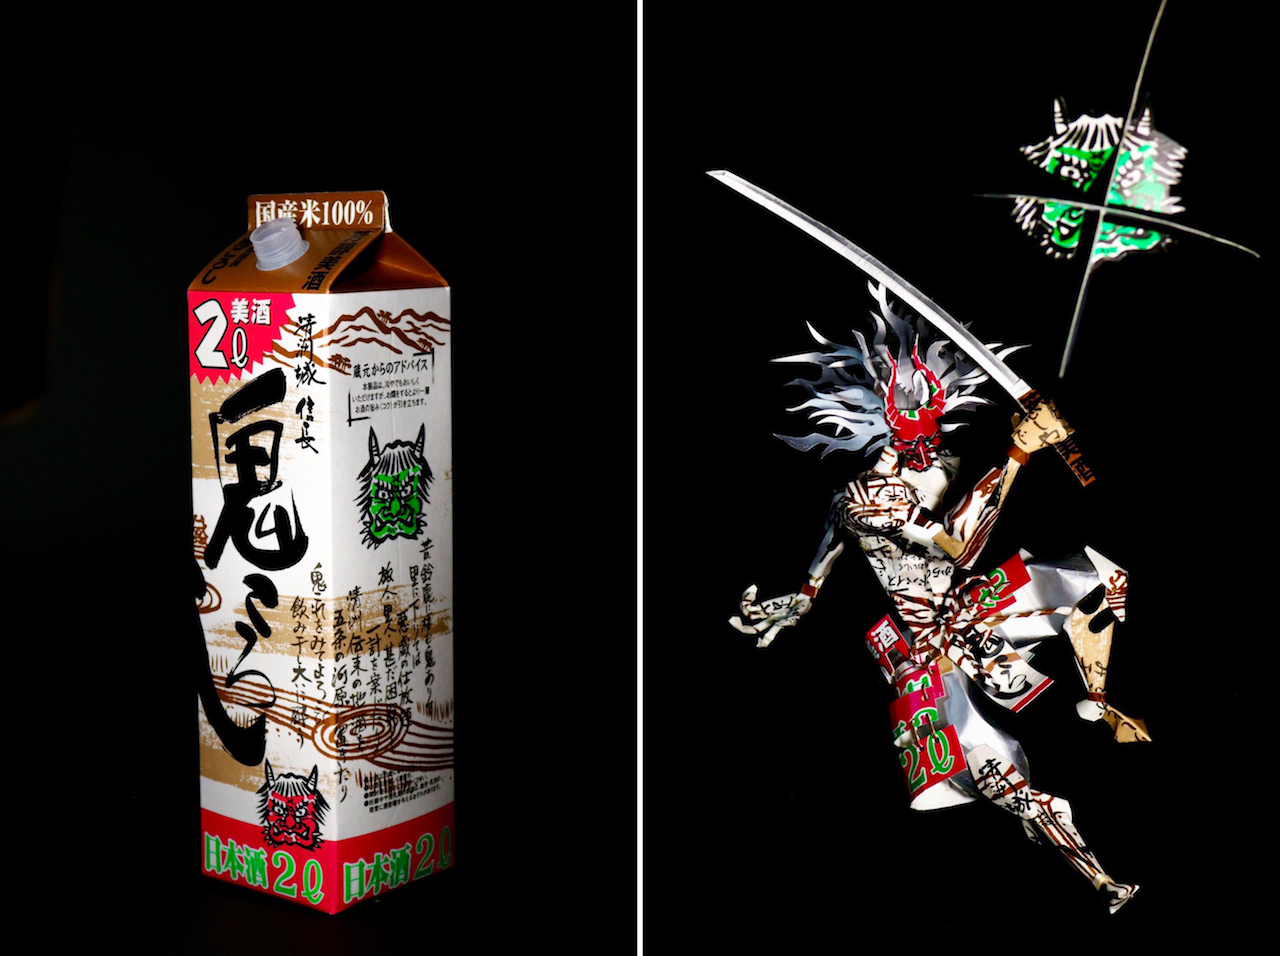 Product Packaging Turned Into Art - 27